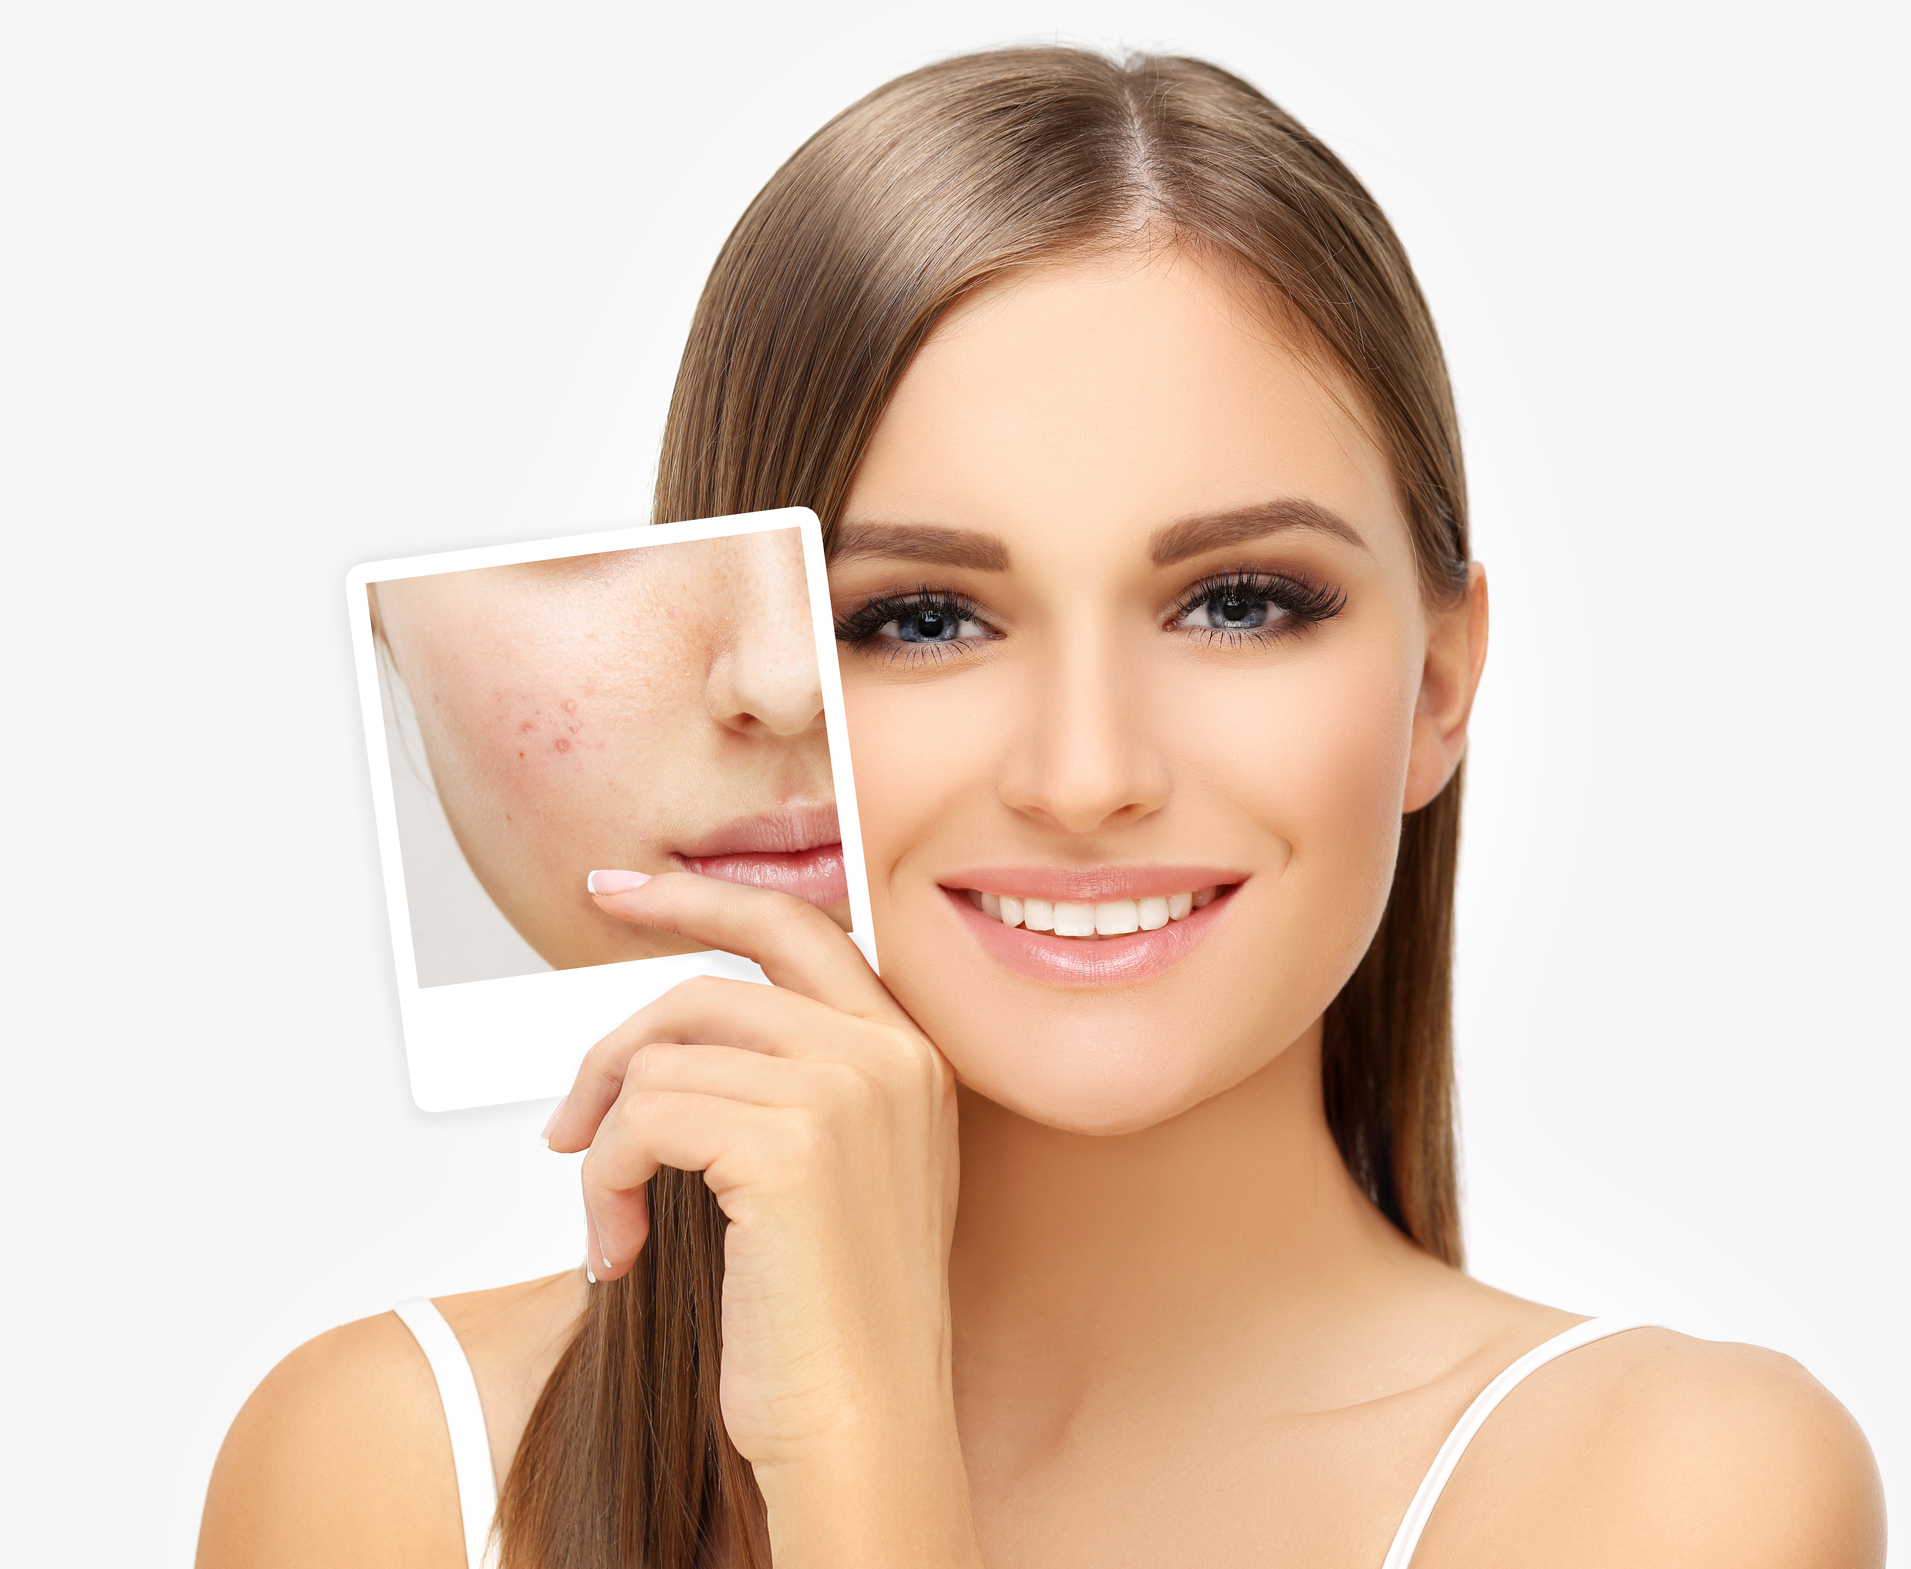 Acne When Is It Time To See A Dermatologist Vanguard Skin